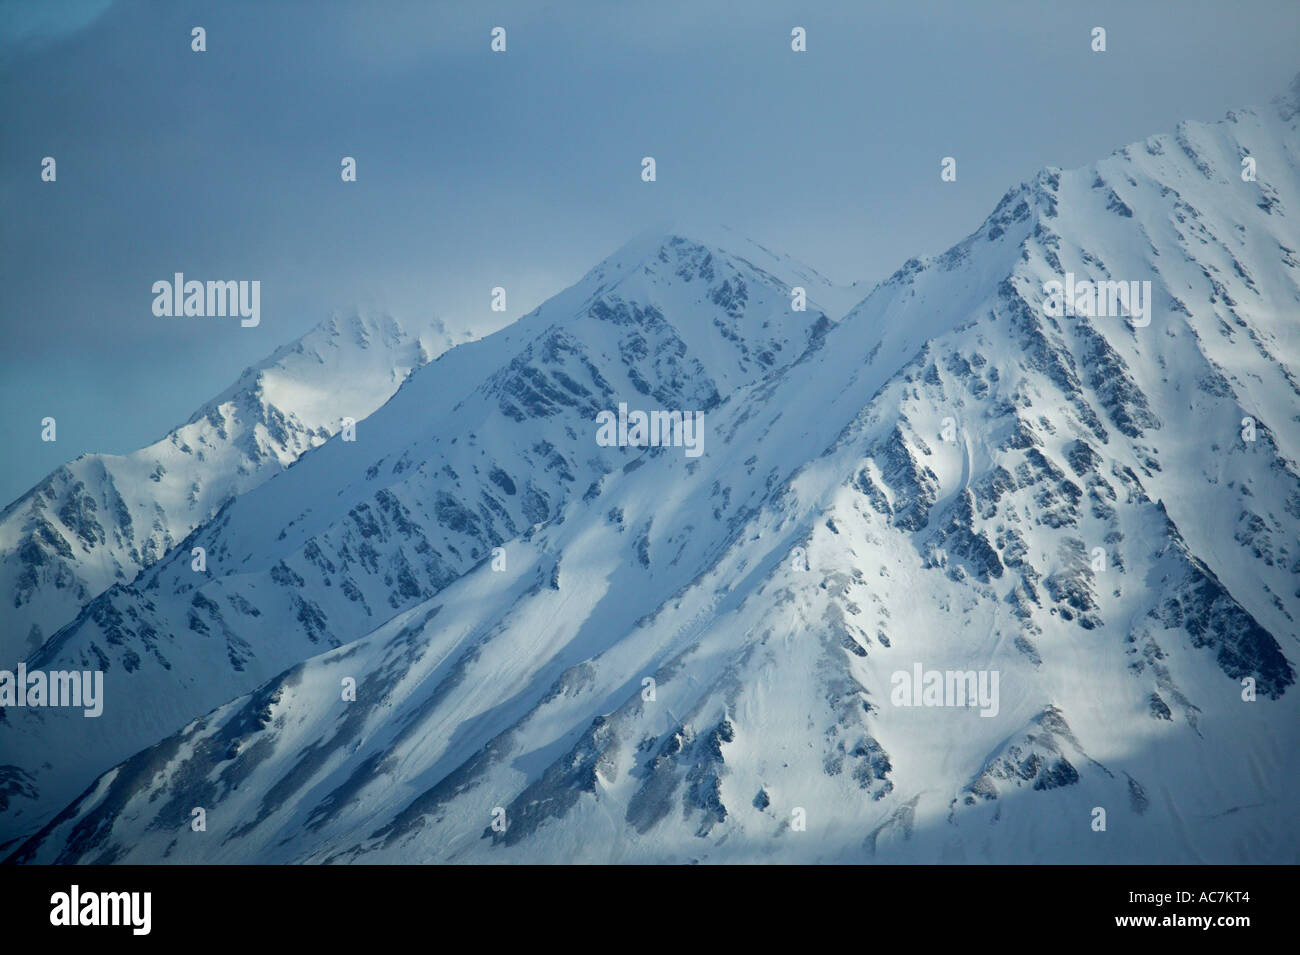 Aerial photograph of snowy mountains on the western side of Spitsbergen, Svalbard region, Norway. Stock Photo